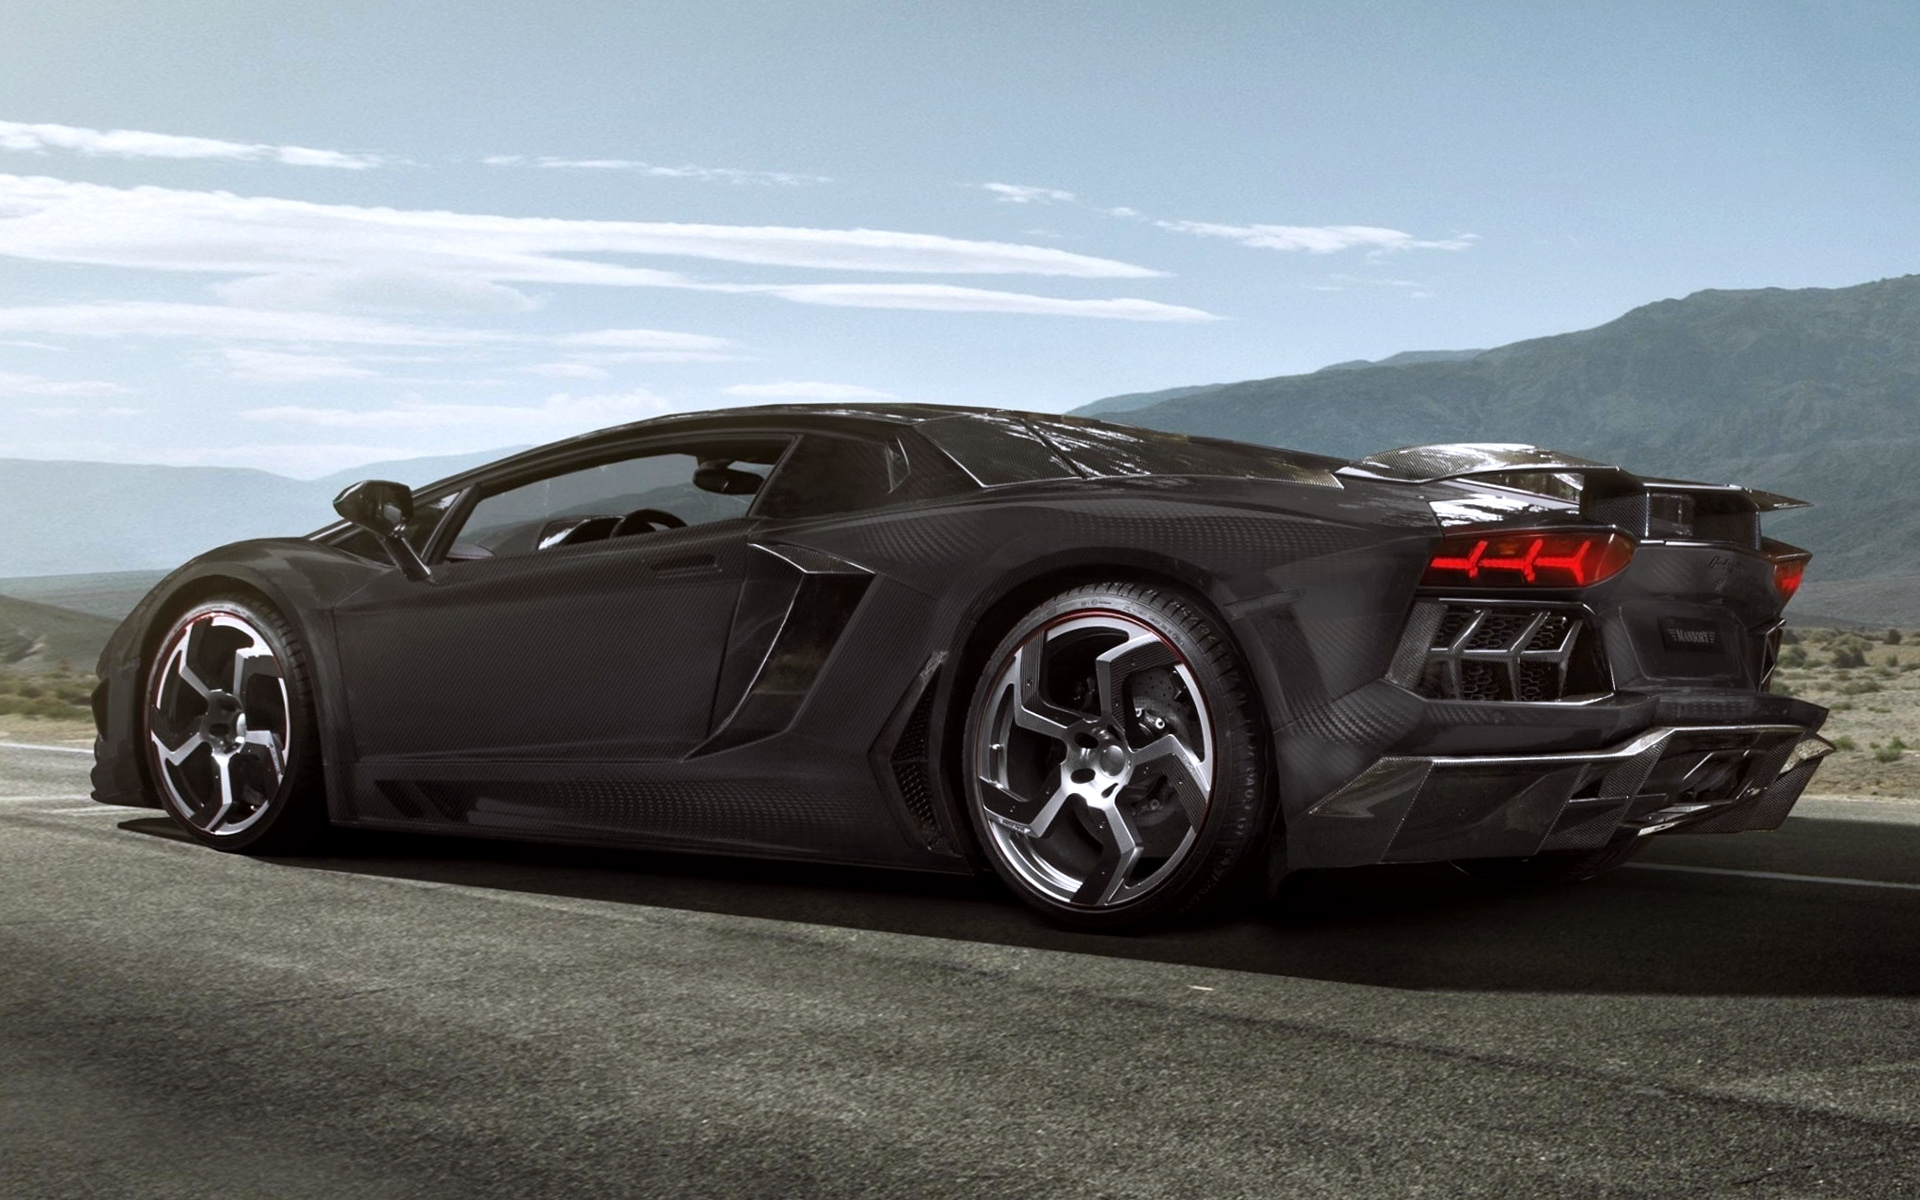 Car 5760x1080 Wallpaper Black Car Lamborghini Wallpapers Hd Desktop And Mobile